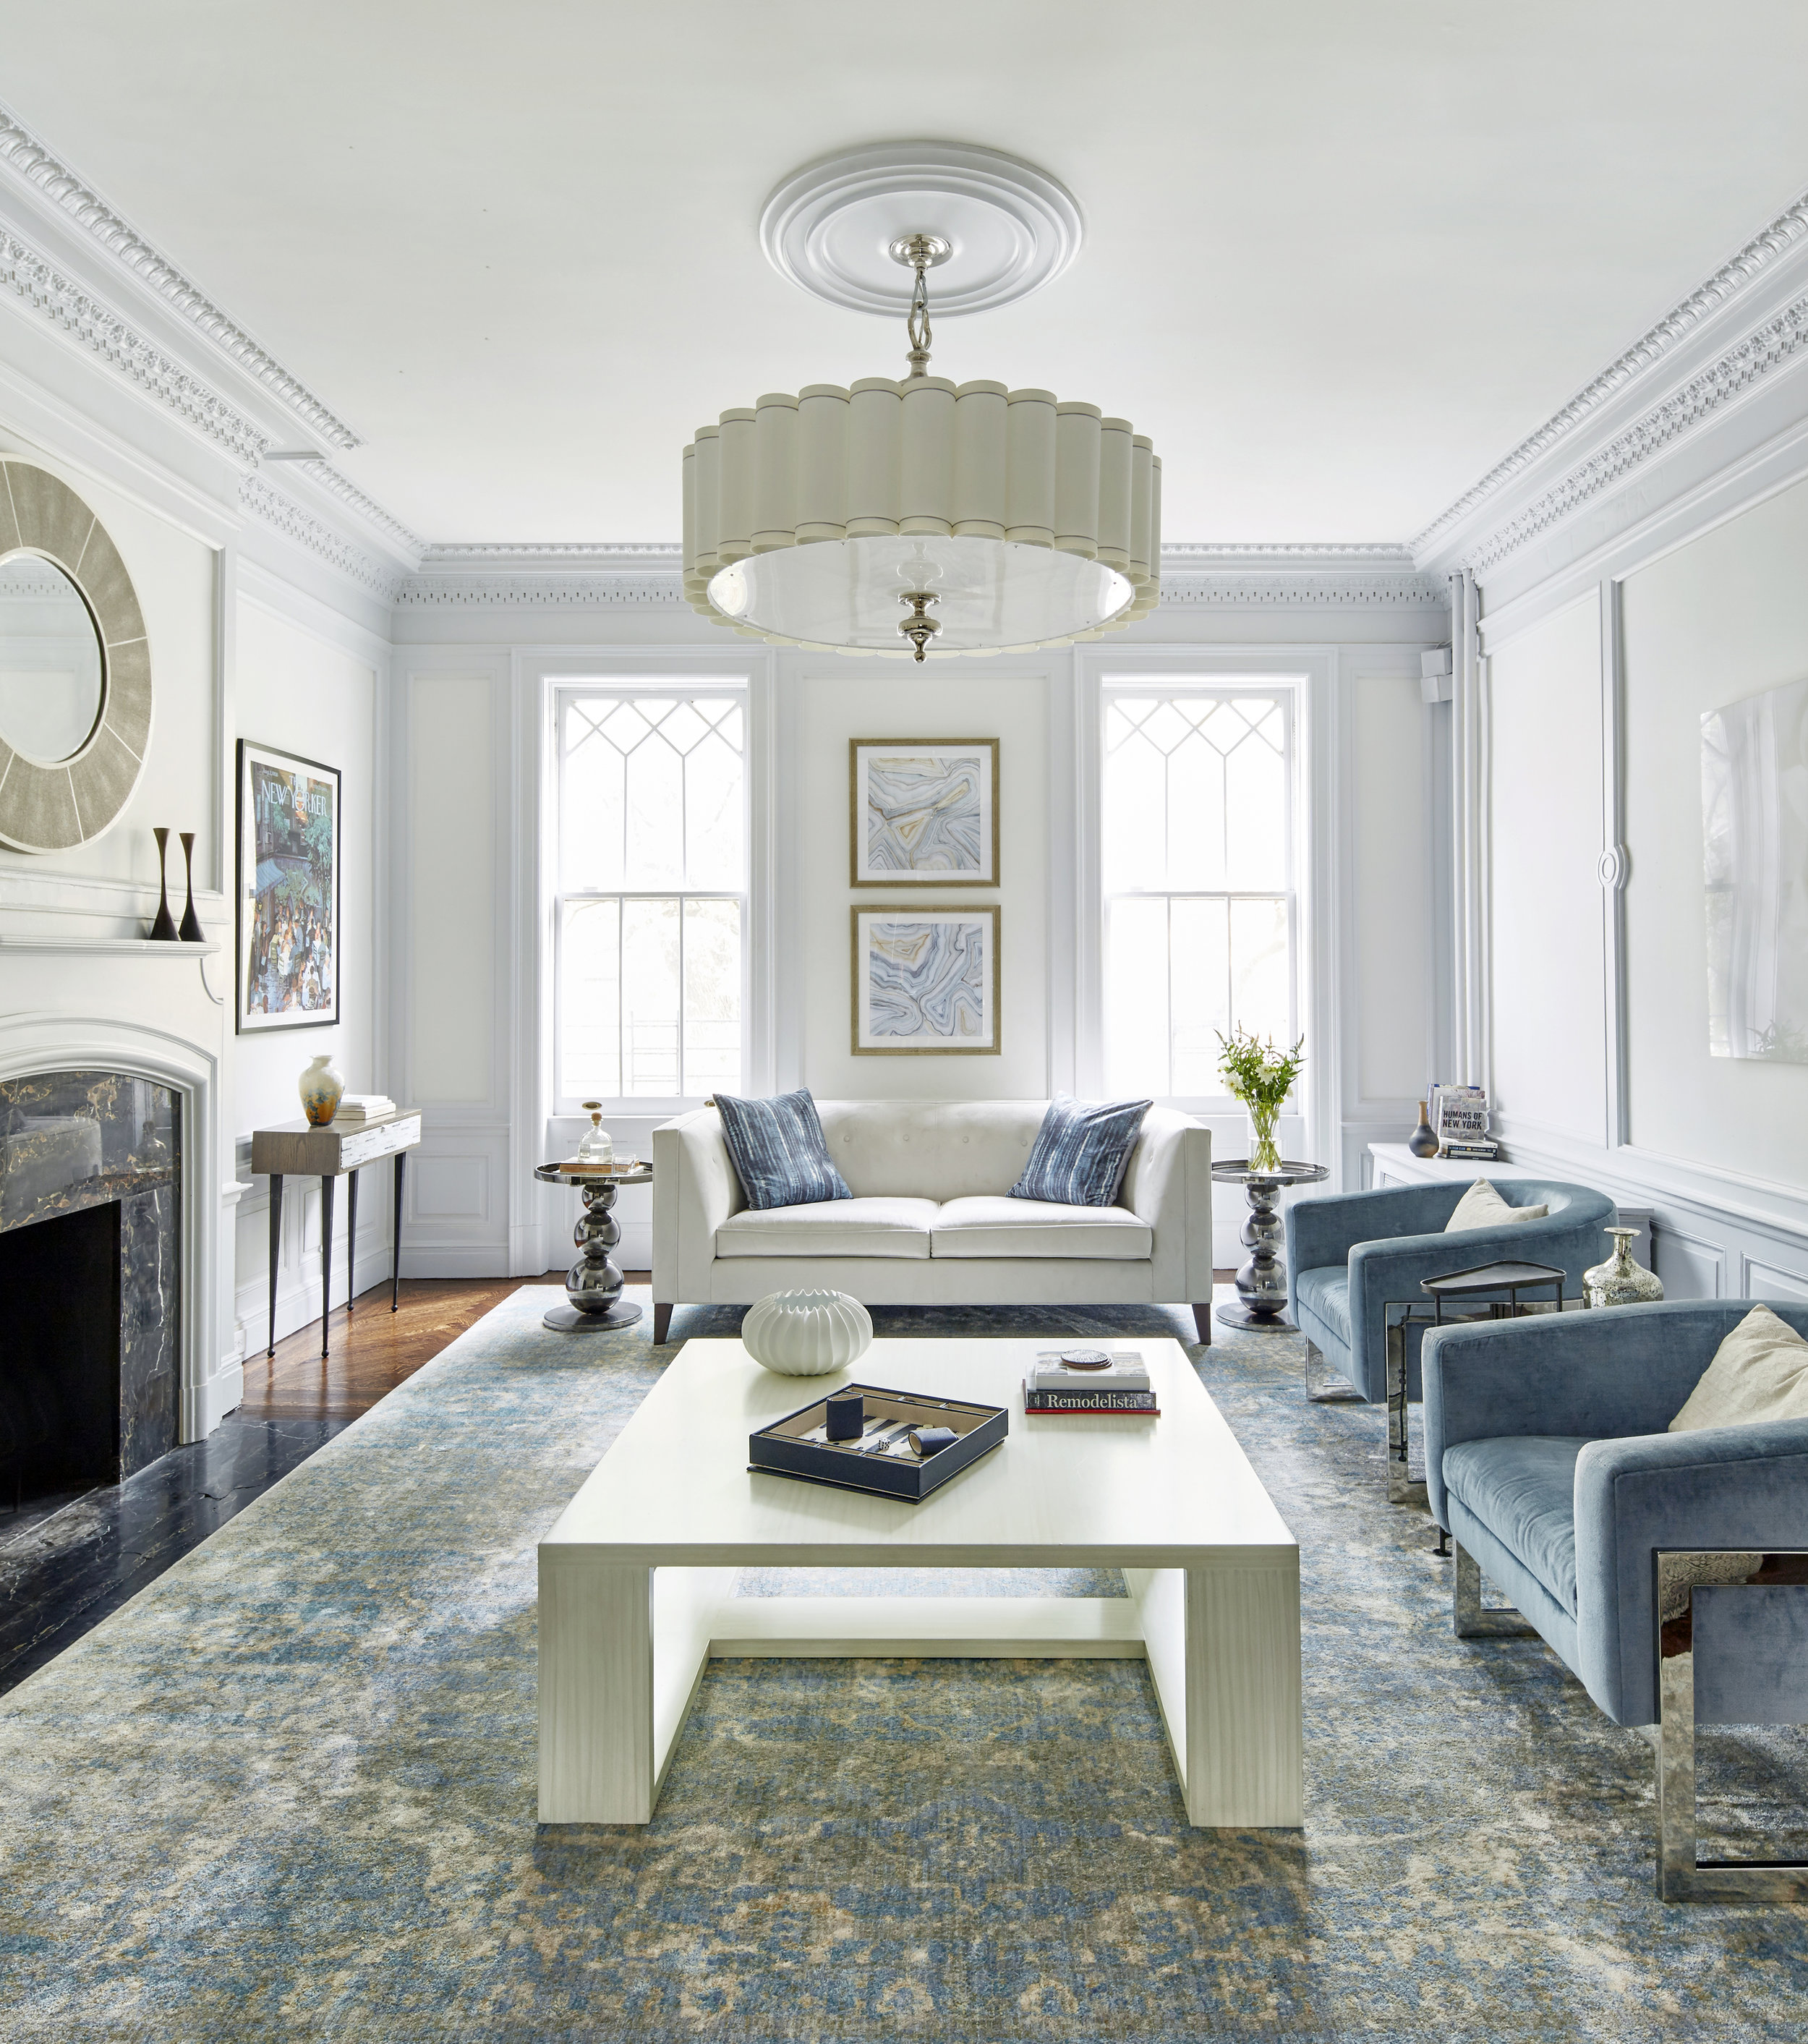 Blue-Cream-Hollywood-Glam-Velvet-Chair-Living-Room-Park-Slope-JMorris-Design-Edesign-Brooklyn-NYC-Designer.jpg